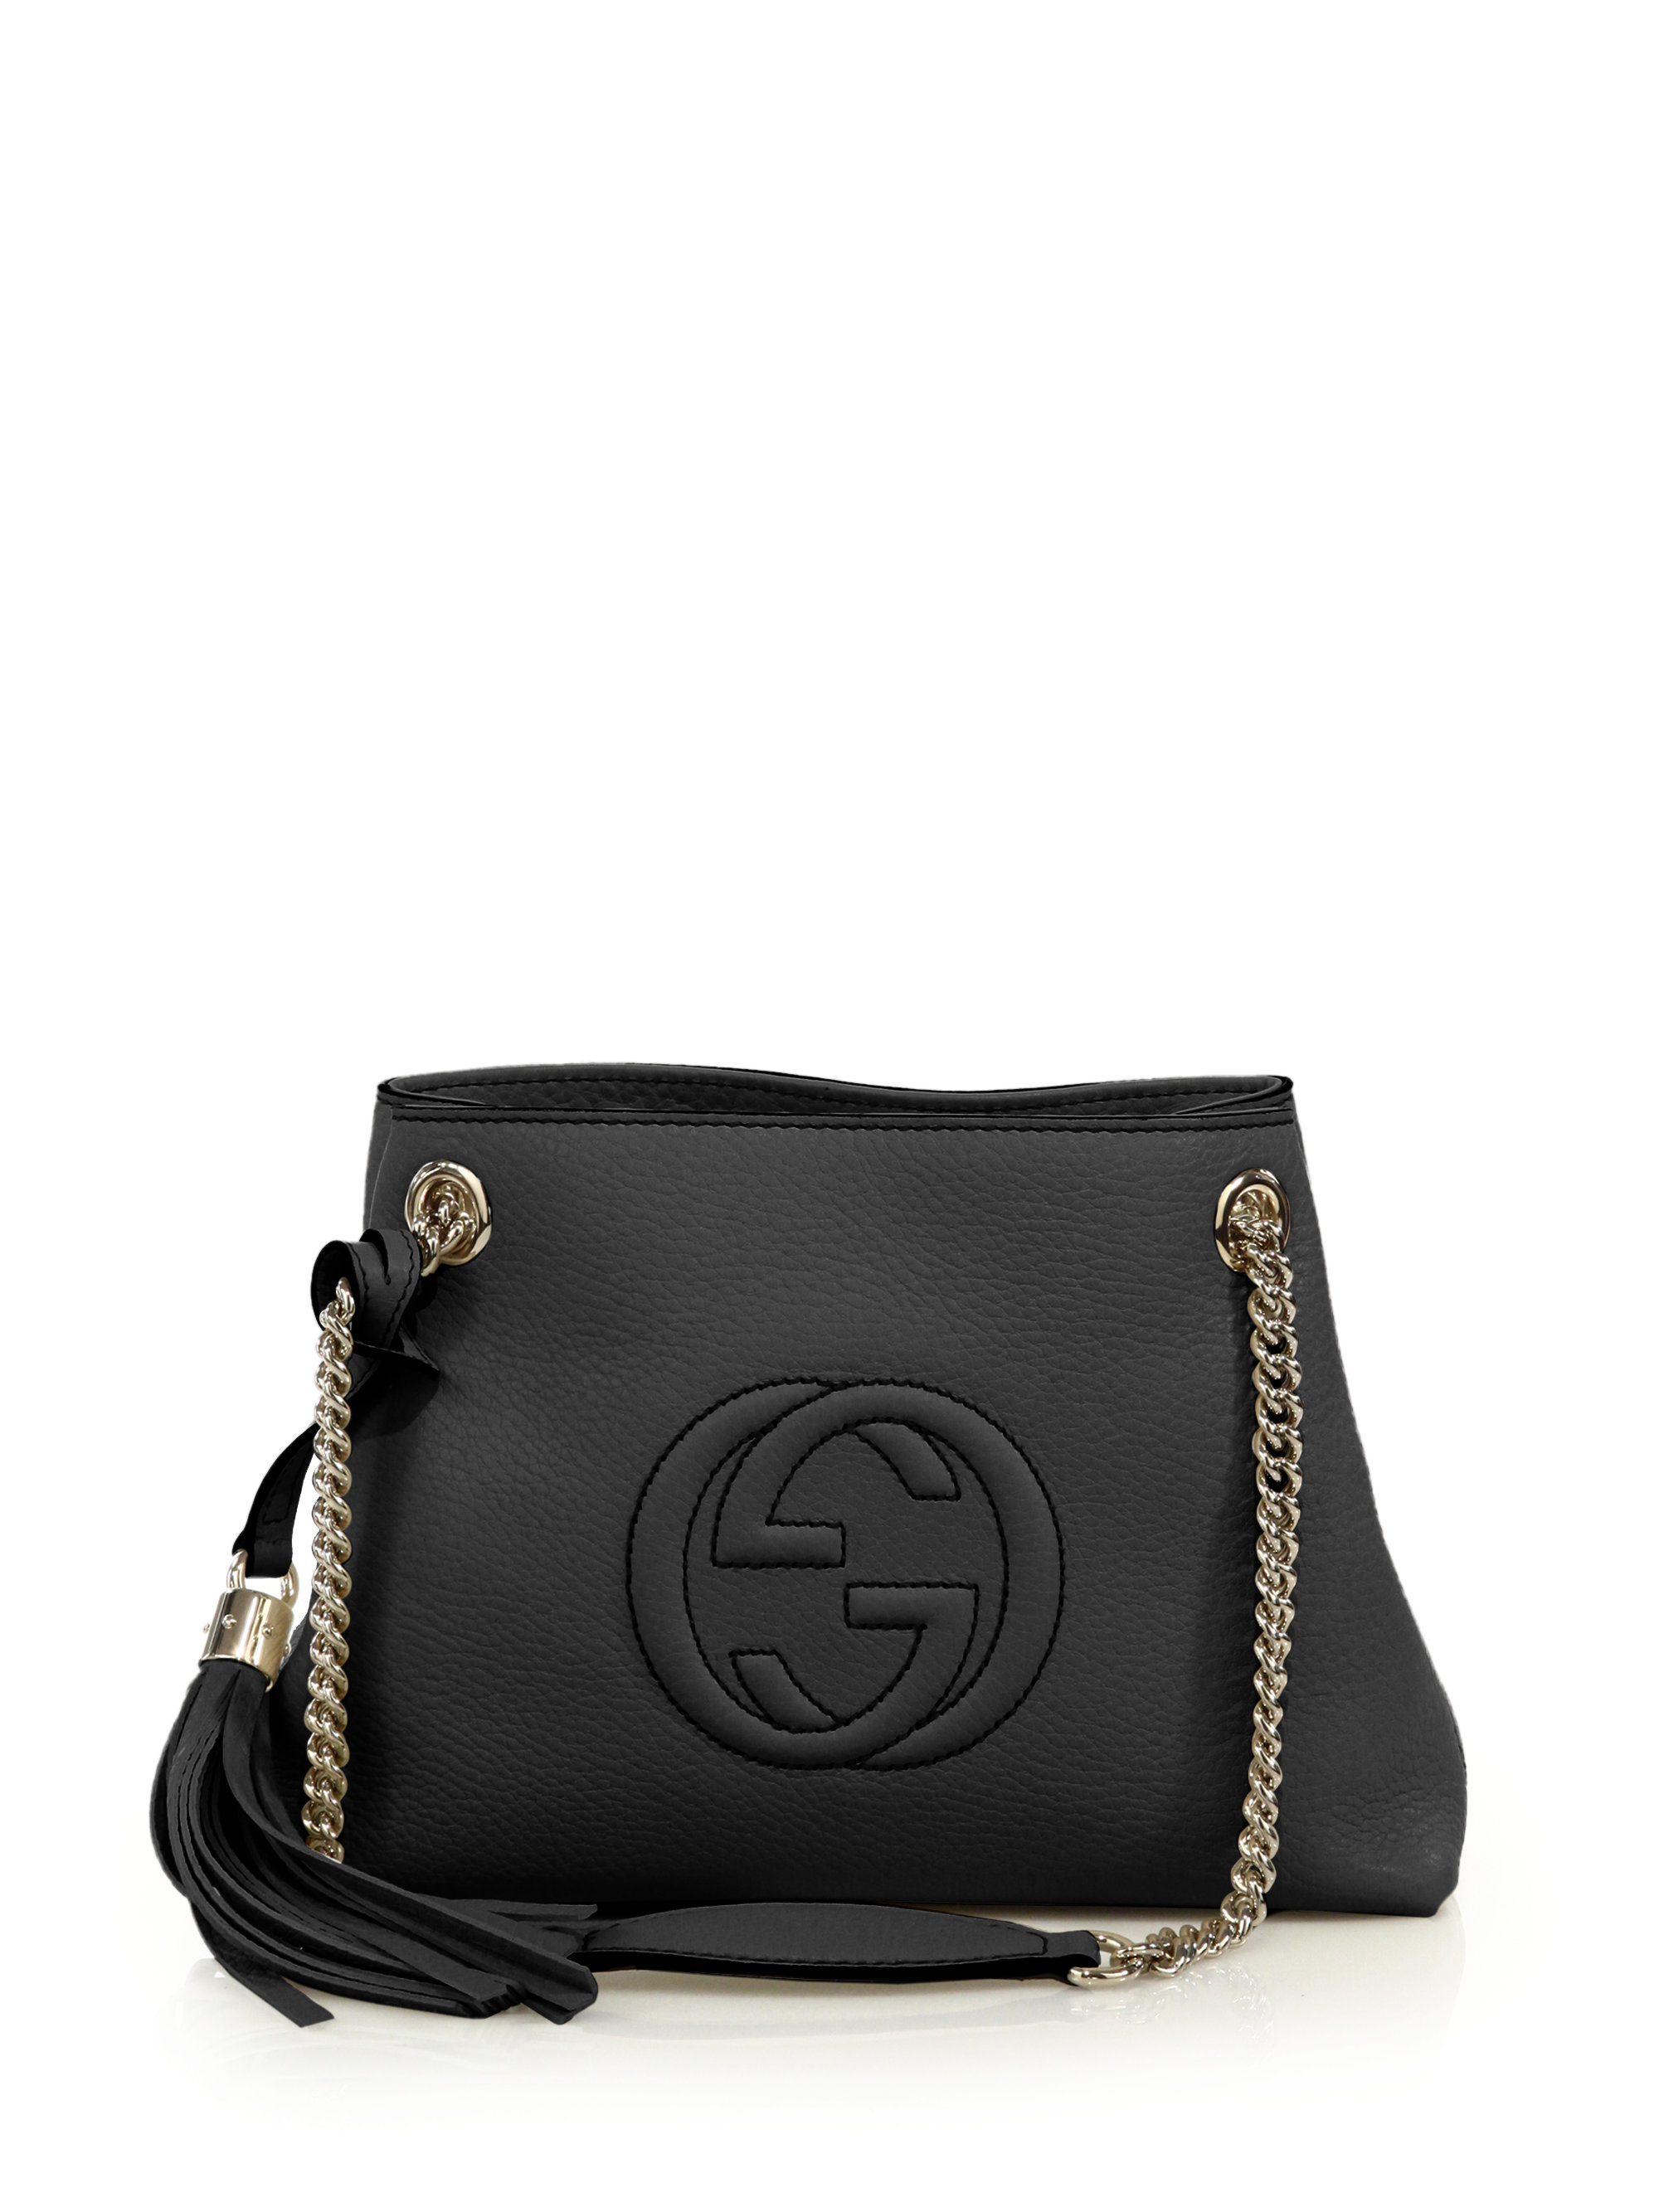 Gucci Soho Small Leather Shoulder Bag in Natural | Lyst